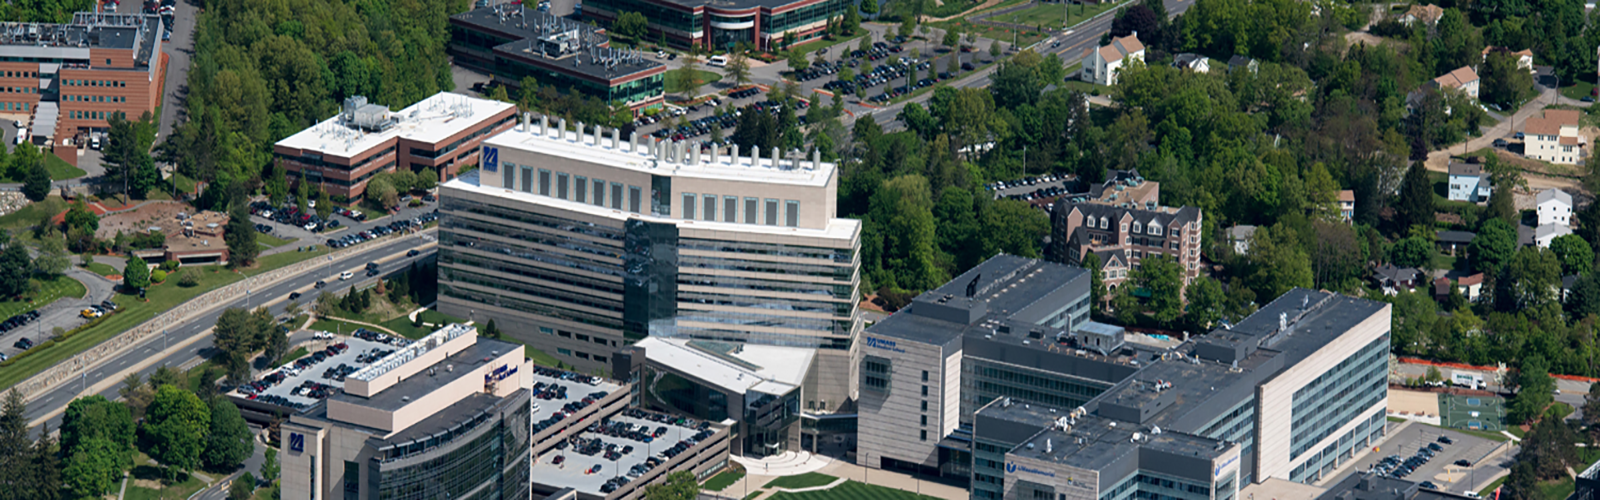 Campus of UMass Medical School